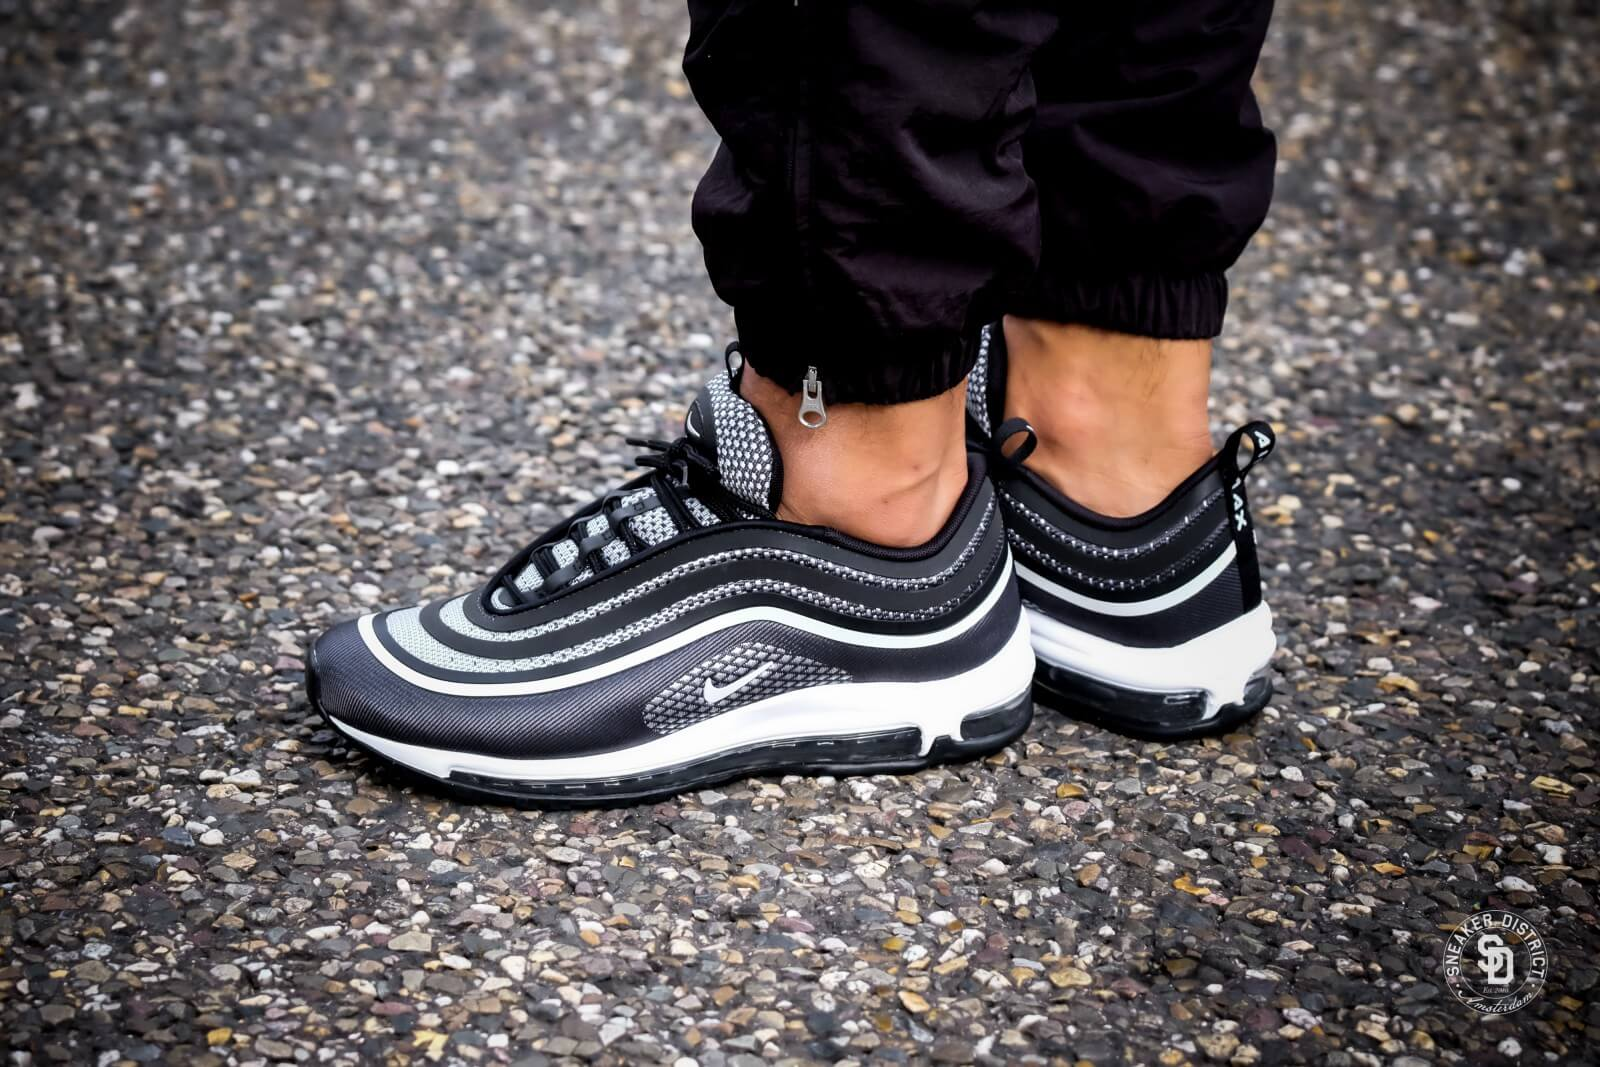 Nike Air Max 97 UL '17 Black / Pure Platinum Anthracite / White